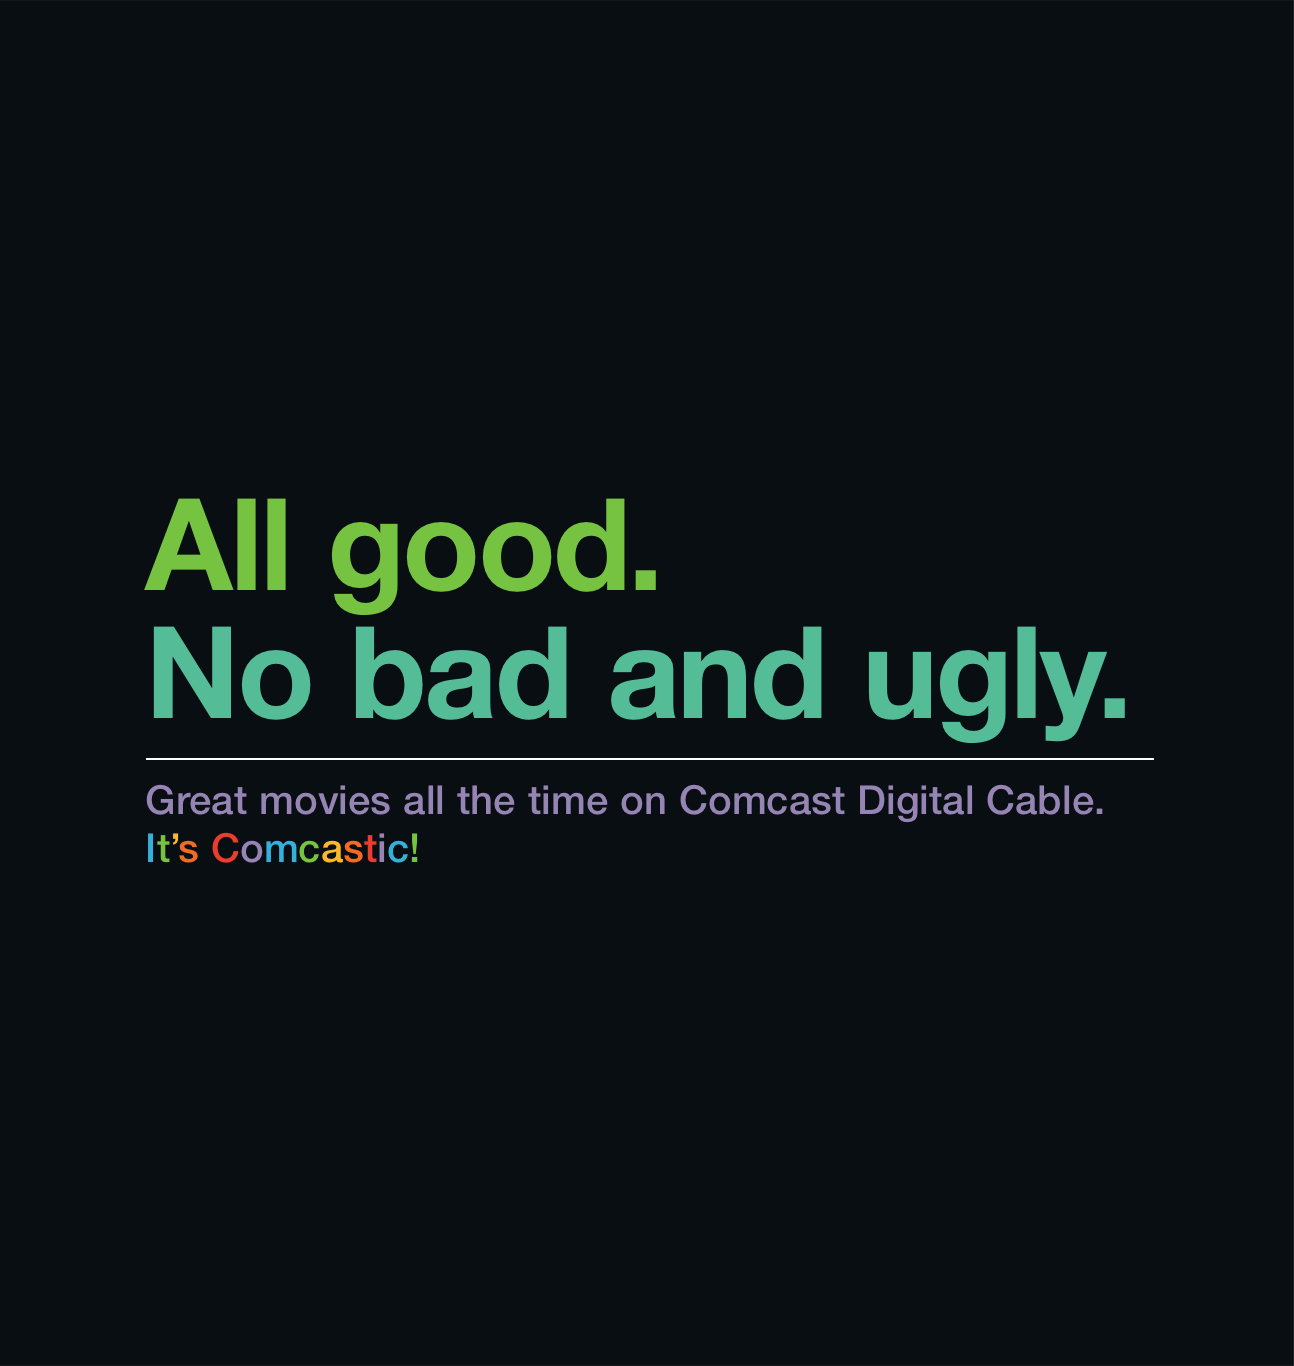 Comcast Product Ad